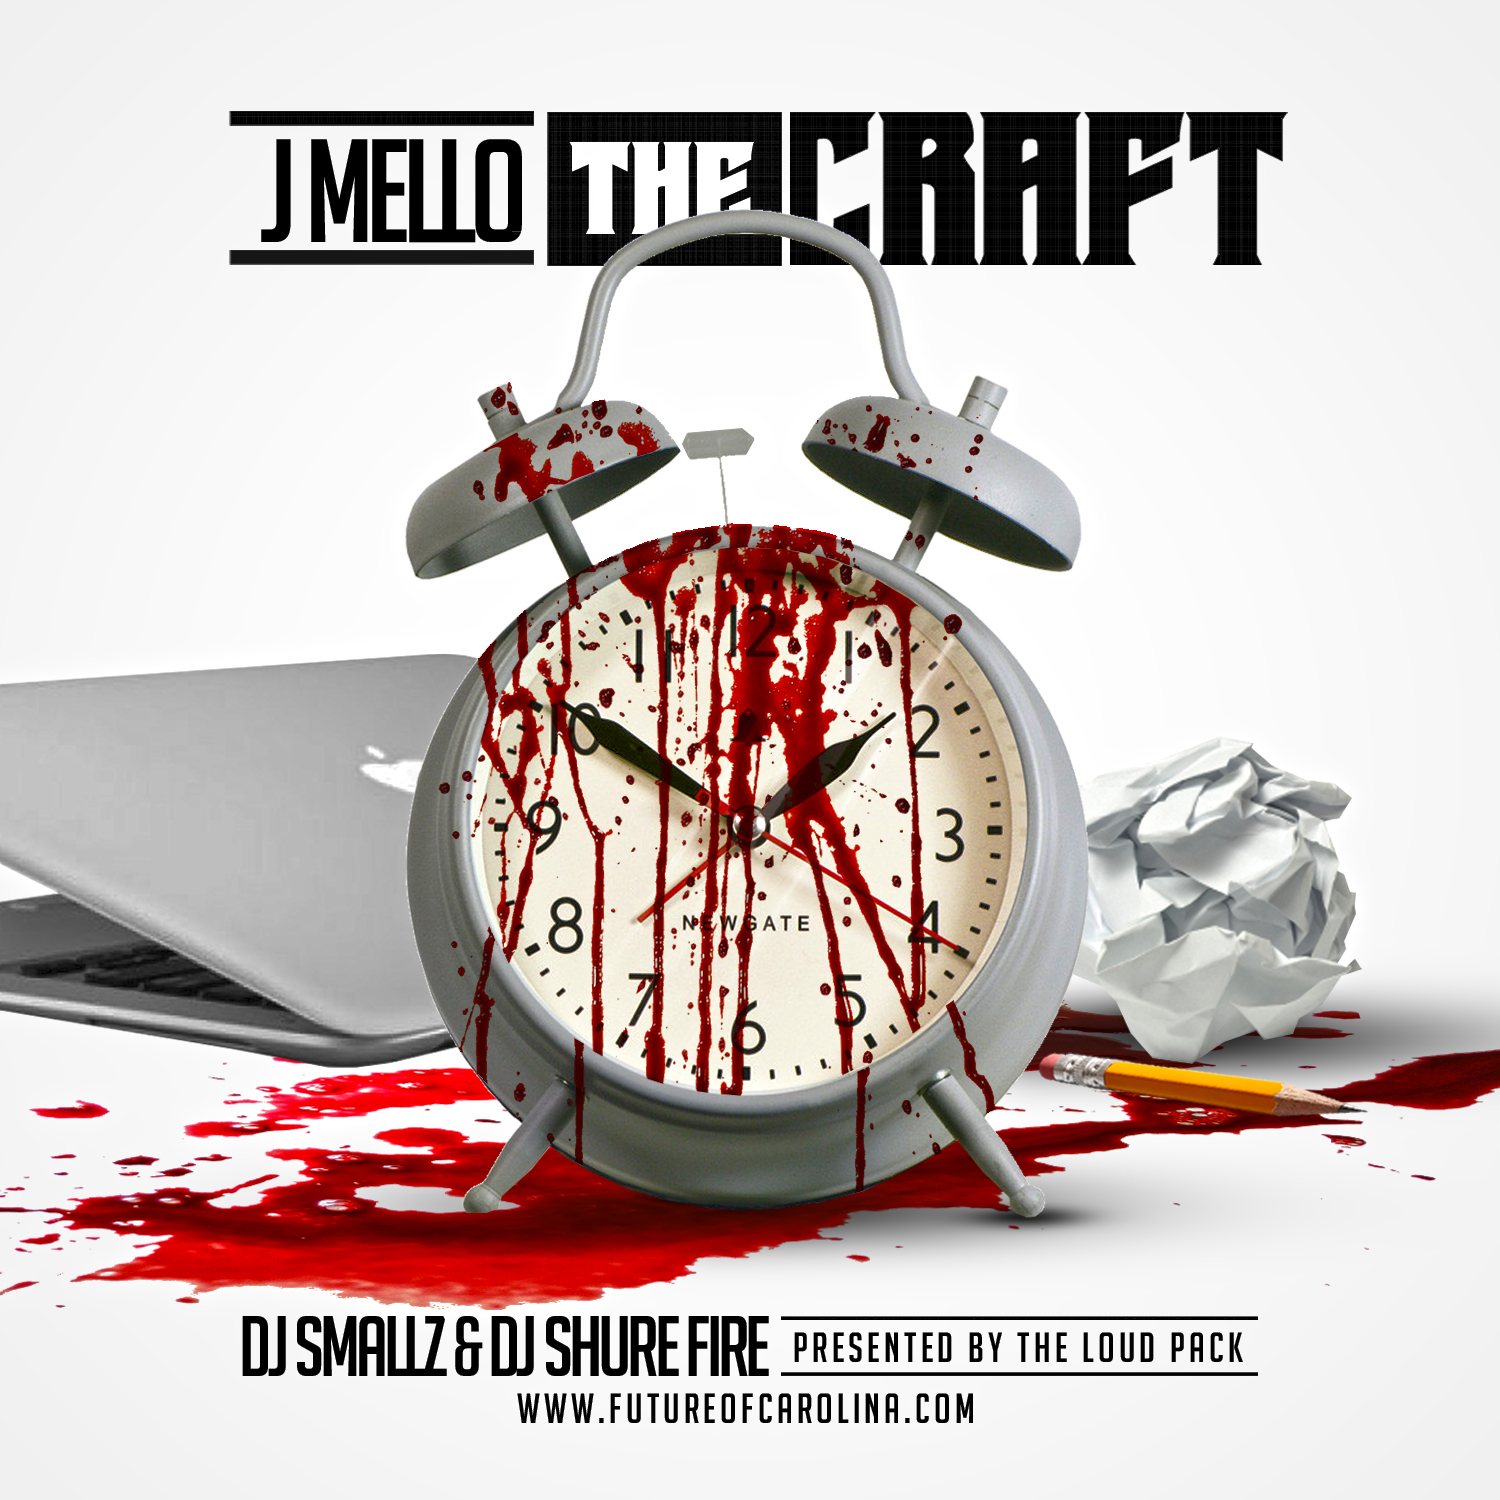 "The Craft is Jay's Sophomore project, after his Freshman tape D.O.P.E. Mello is back with a new approach in his hip-hop career. Jay reaches out to a big name featuring DJ Smallz & DJ Shurfire...Using the hype of ""The Turn Up"" Jay has incorporated his soulful content with that signature down south sound"